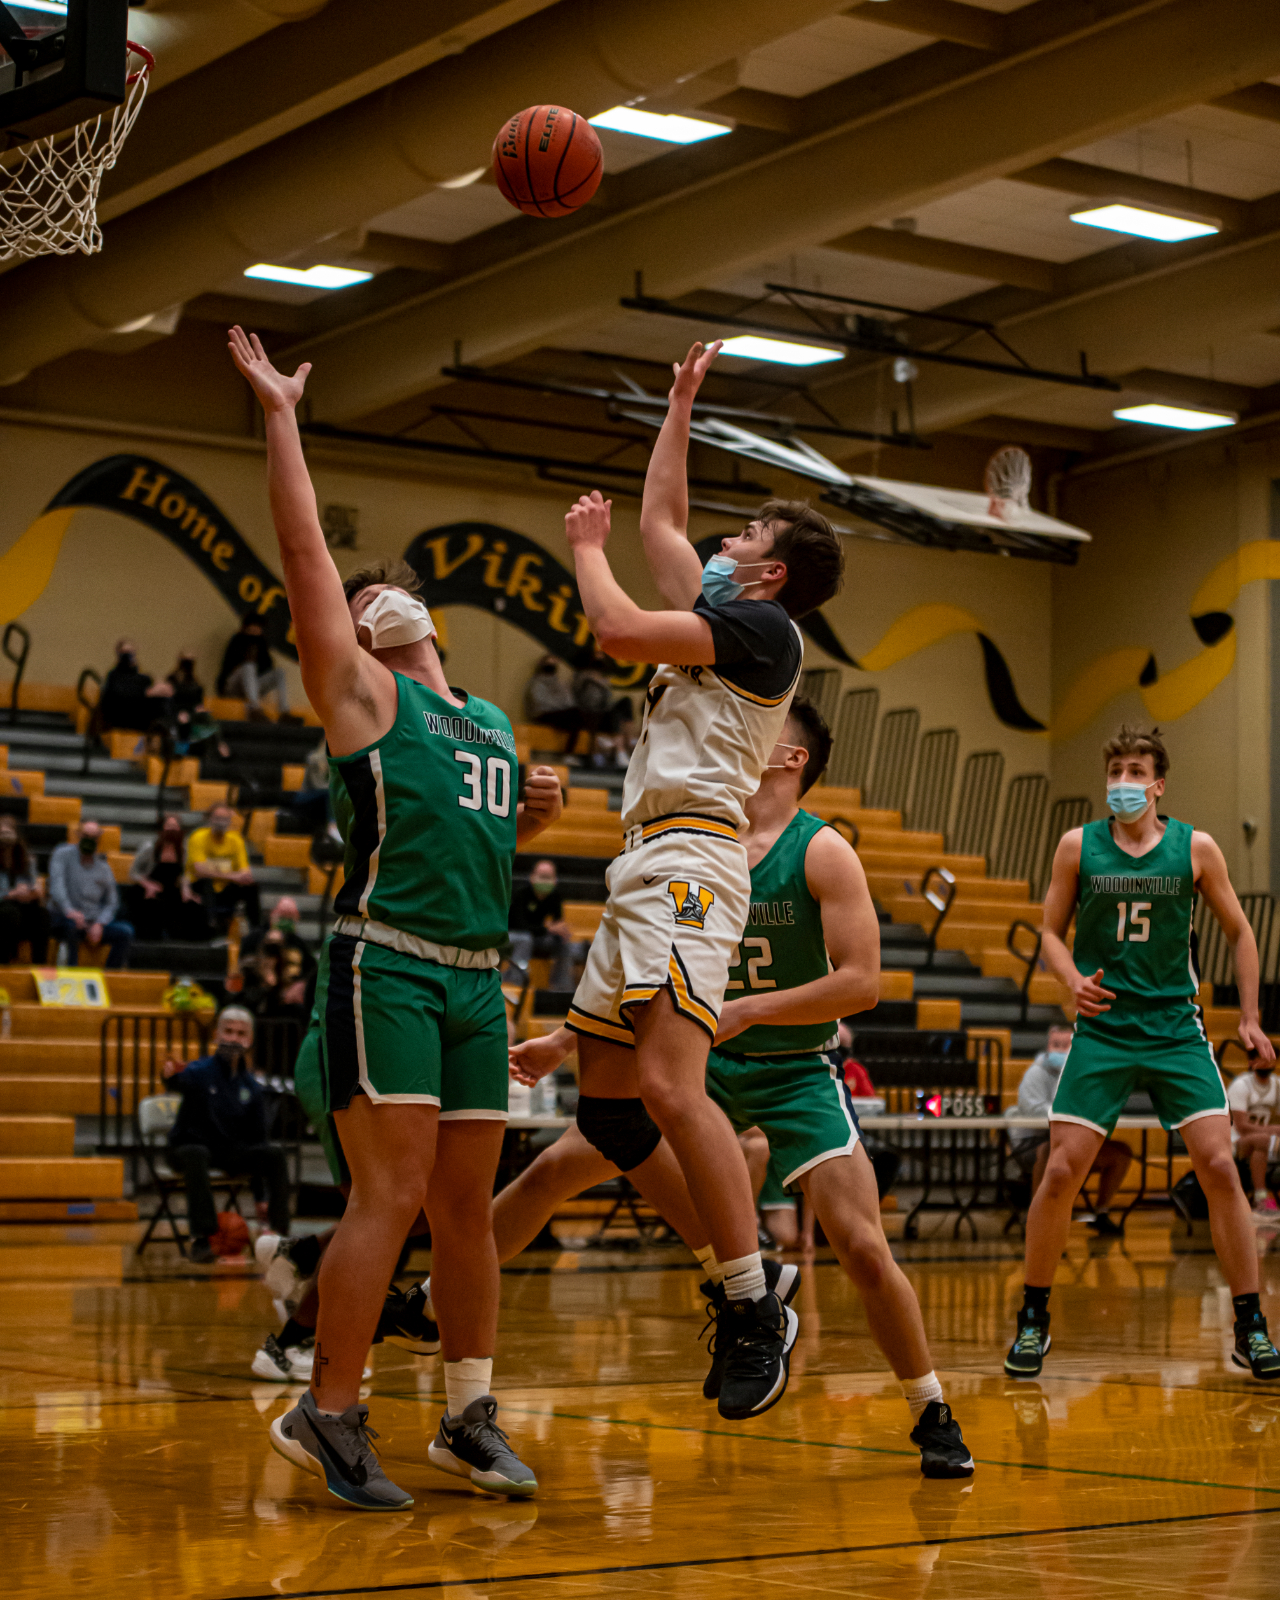 See Highlights from 4/23 Boys Basketball